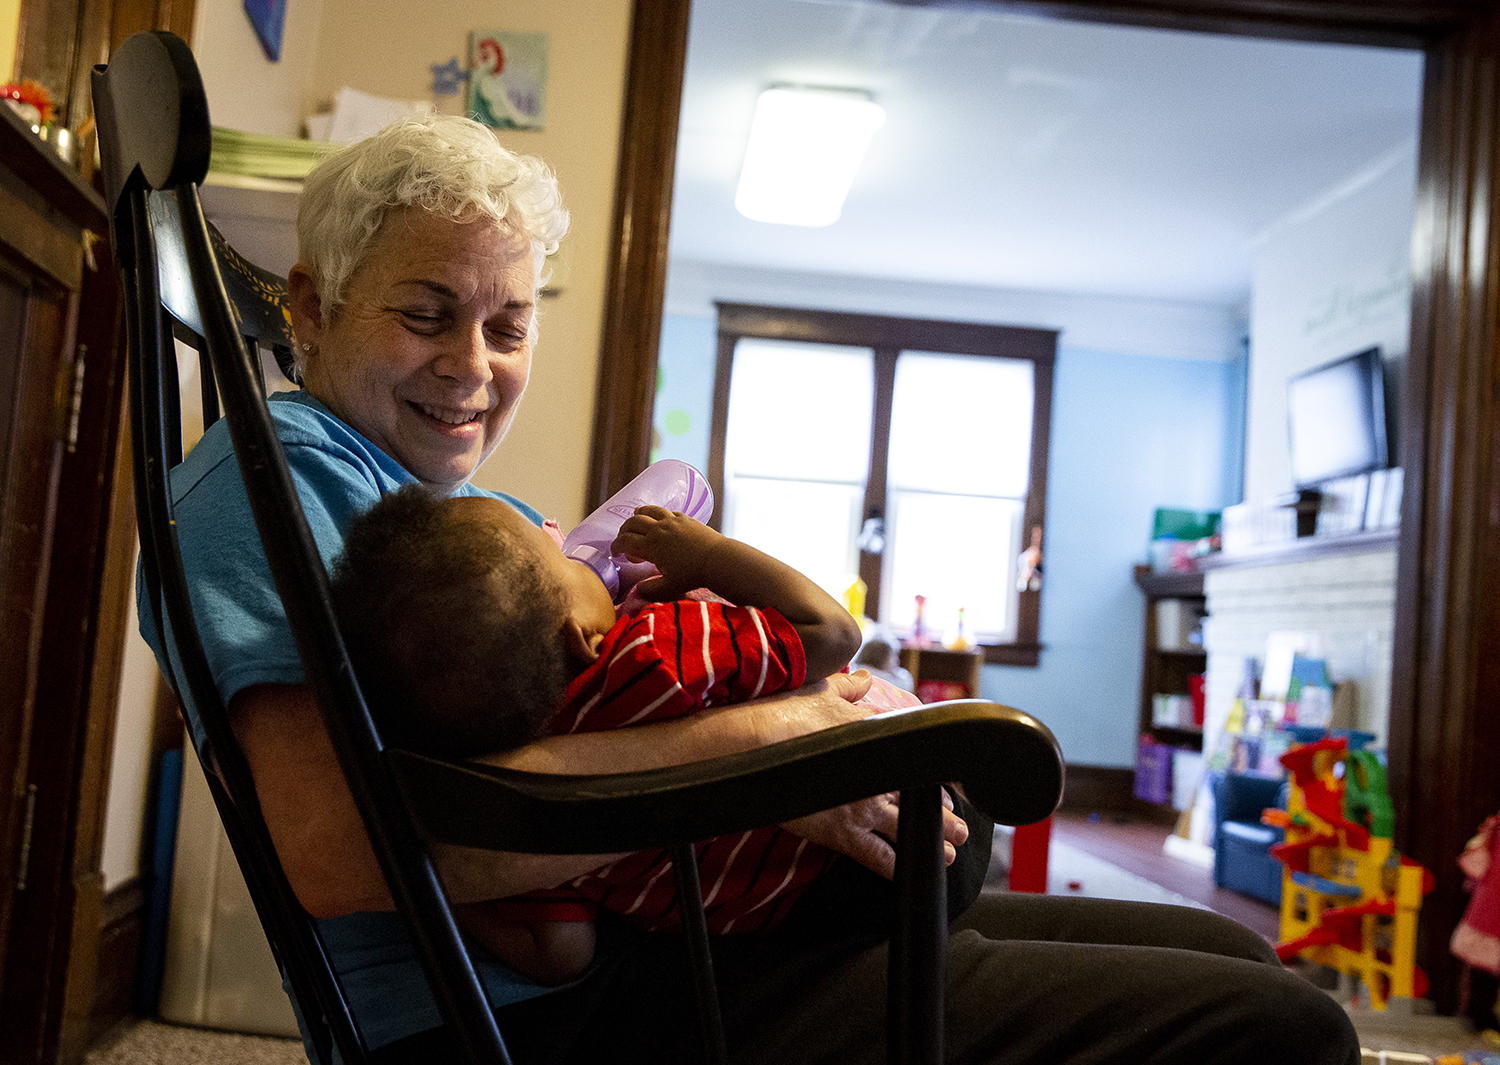 Beth Yong, a volunteer at the Mini O'Bierne Crisis Nursery for nearly 20 years, feeds an infant at the nursery Wednesday, Feb. 27, 2019 in Springfield, Ill. The nursery has announced a fundraising campaign to expand their long-time home on N. Seventh Street, or to find a new one. [Rich Saal/The State Journal-Register]